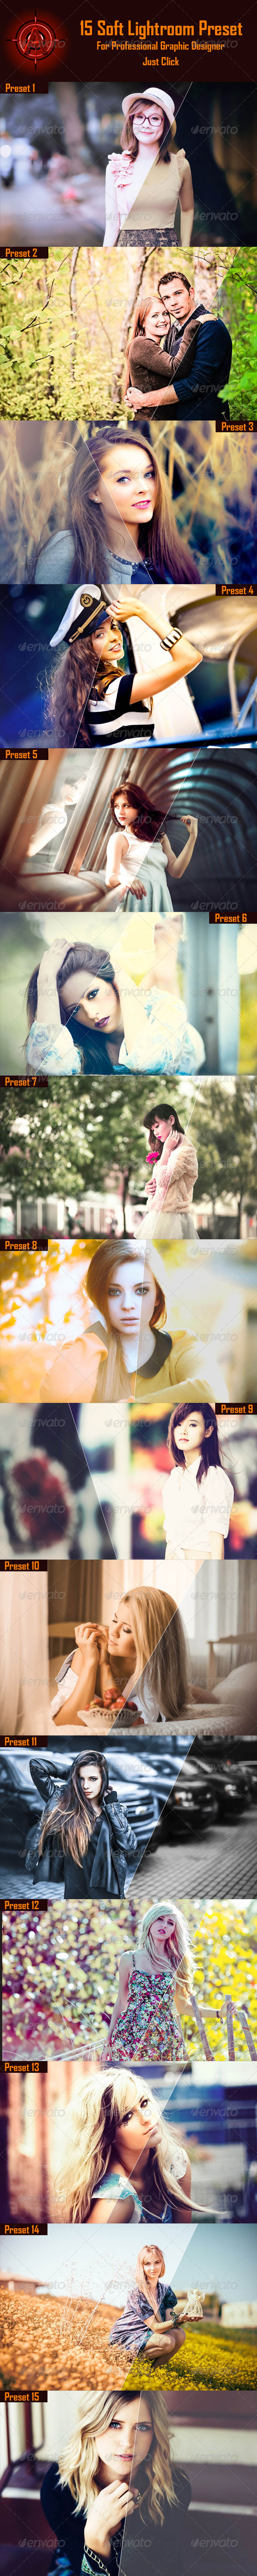 GraphicRiver 15 Soft Lightroom Presets 8714105